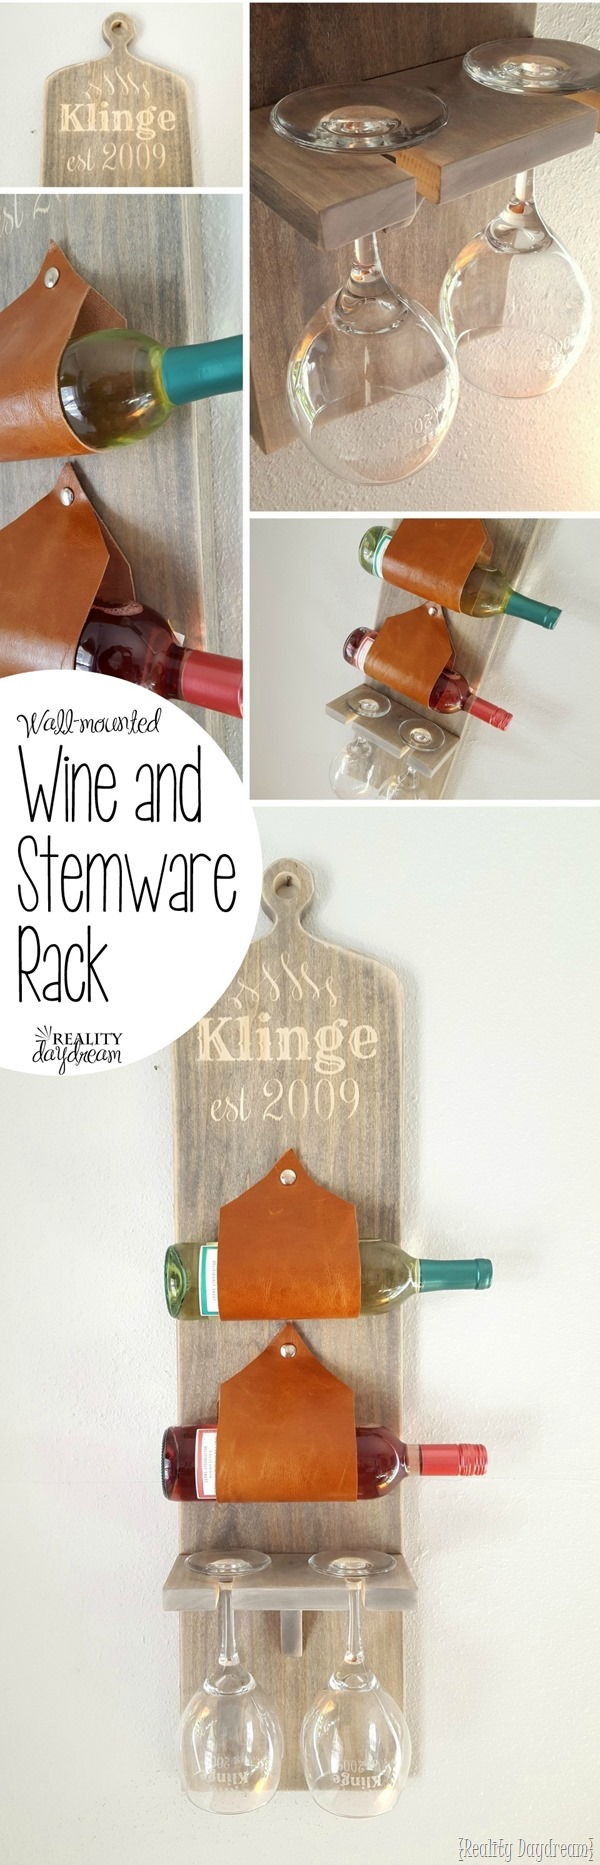 Wall-mounted-wine-and-stemware-rack...-using-leather-as-the-slings-Reality-Daydream_thumb.jpg